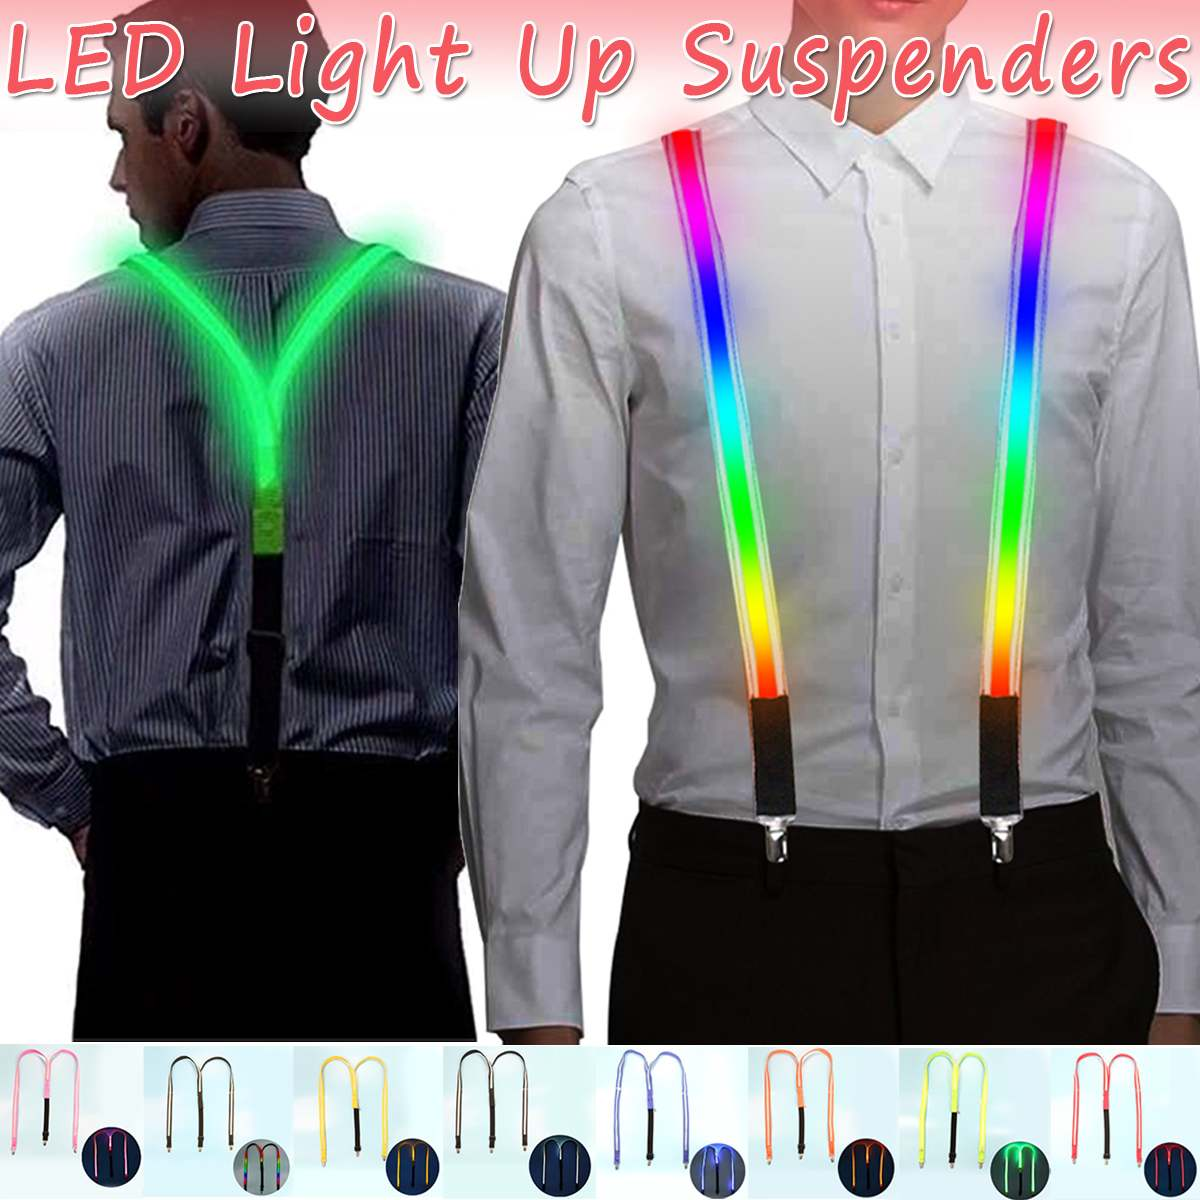 1PCS Printed LED Suspenders Men 3 Clips-on Braces Vintage Mens Suspender For Trousers Husband Male Suspensorio For Skirt